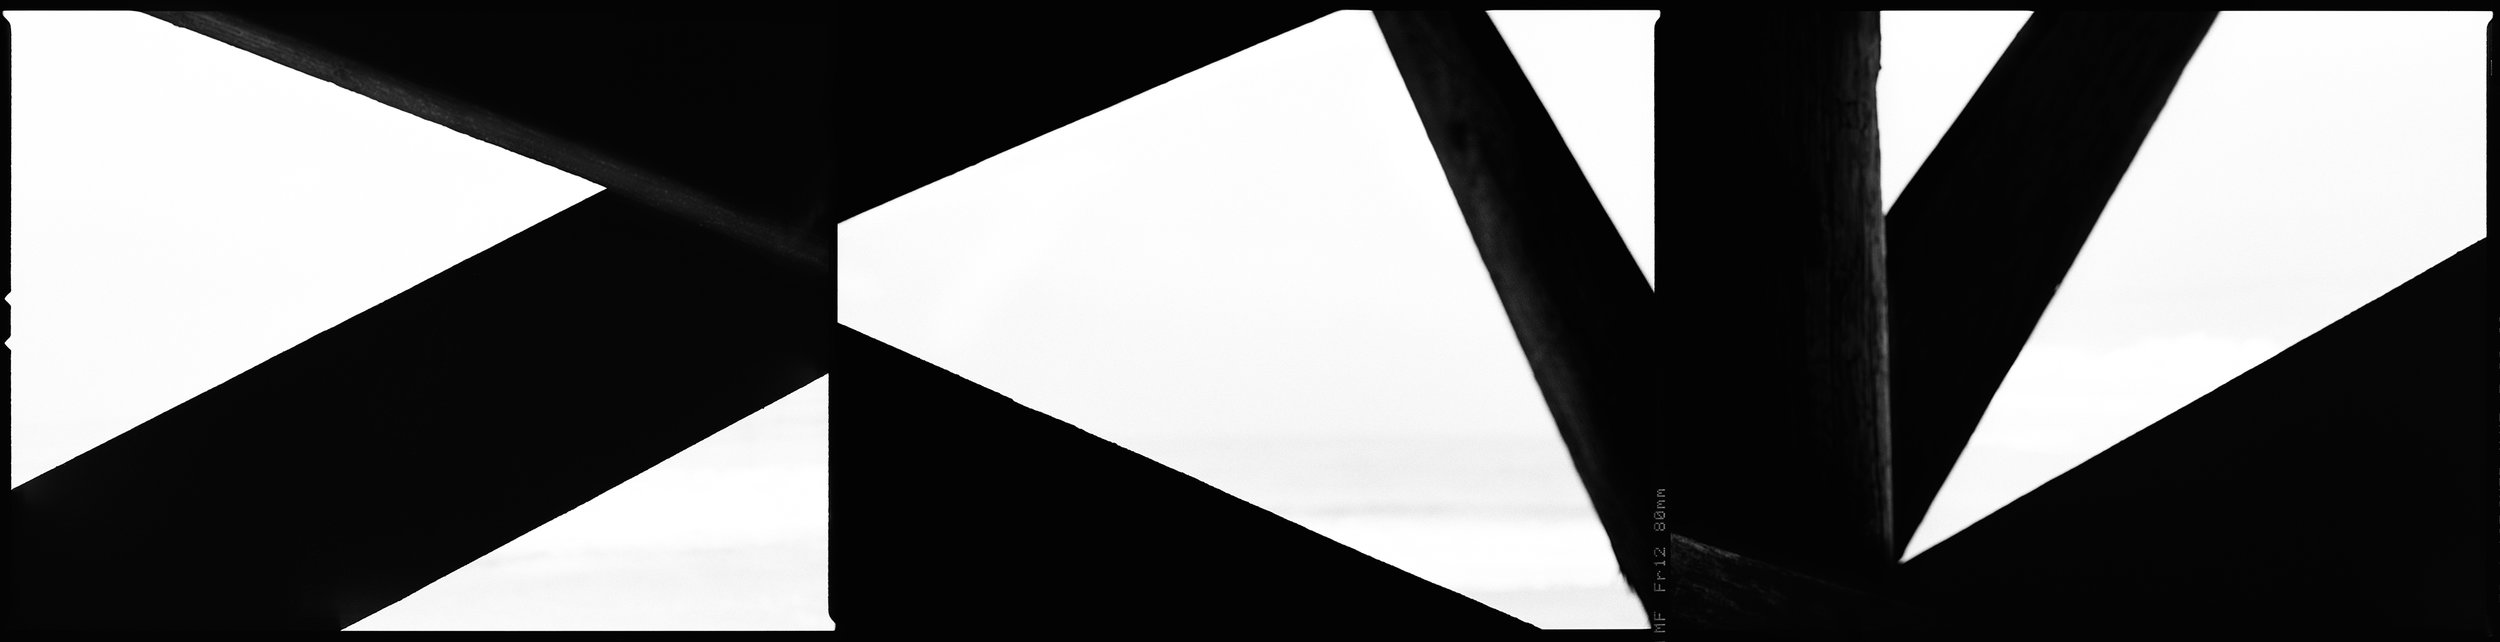 Untitled #22   (Nowhere)  , 2012/ archival pigment   print, 13 1/8  x 48 inches  ,  edition of 3 plus 2 AP